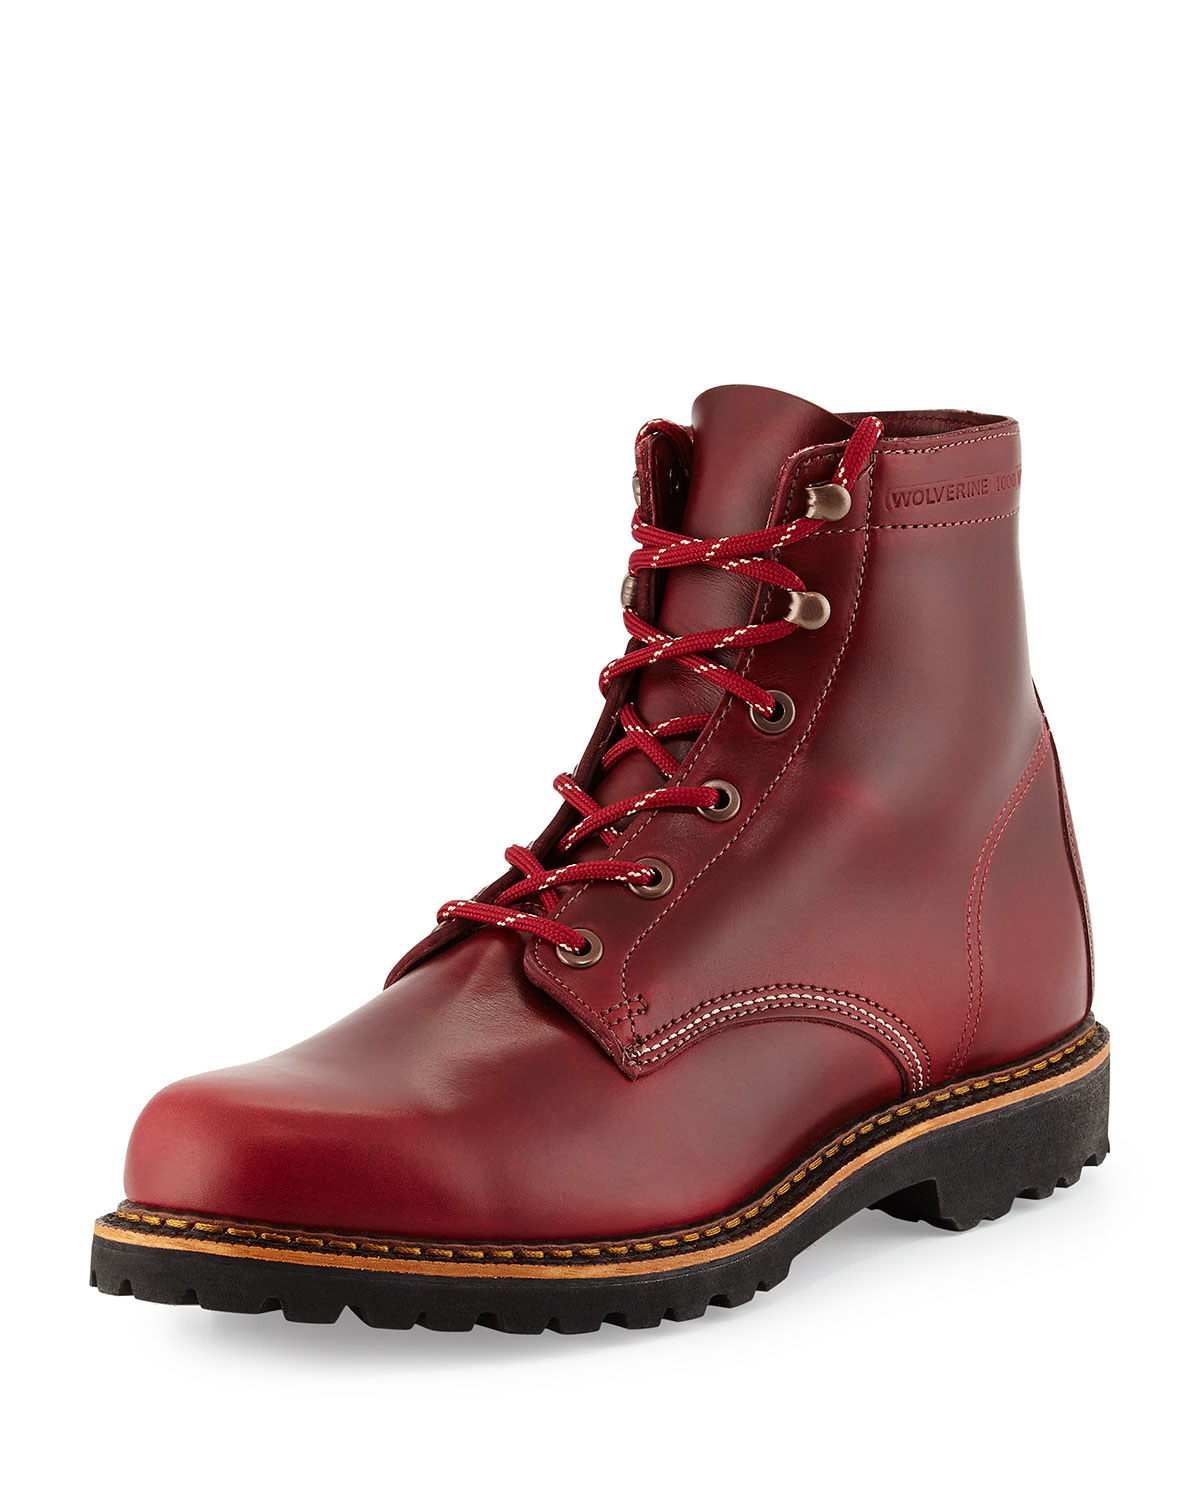 1e8d6f3fc16 Duvall 1000 Mile Boots, Dark Red